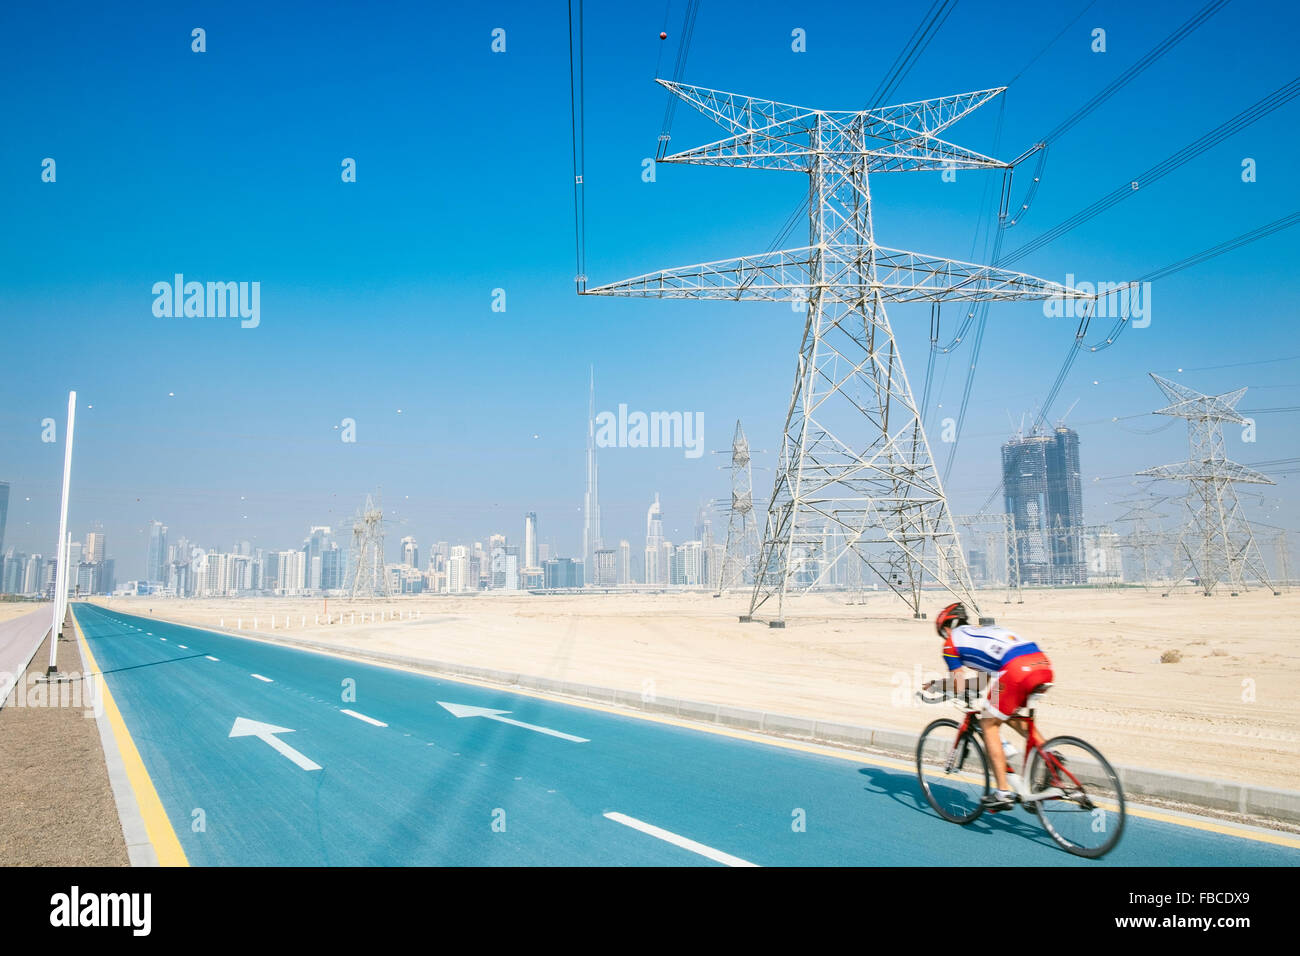 Cyclist on new cycle track at District One at new property development in Dubai United Arab Emirates - Stock Image